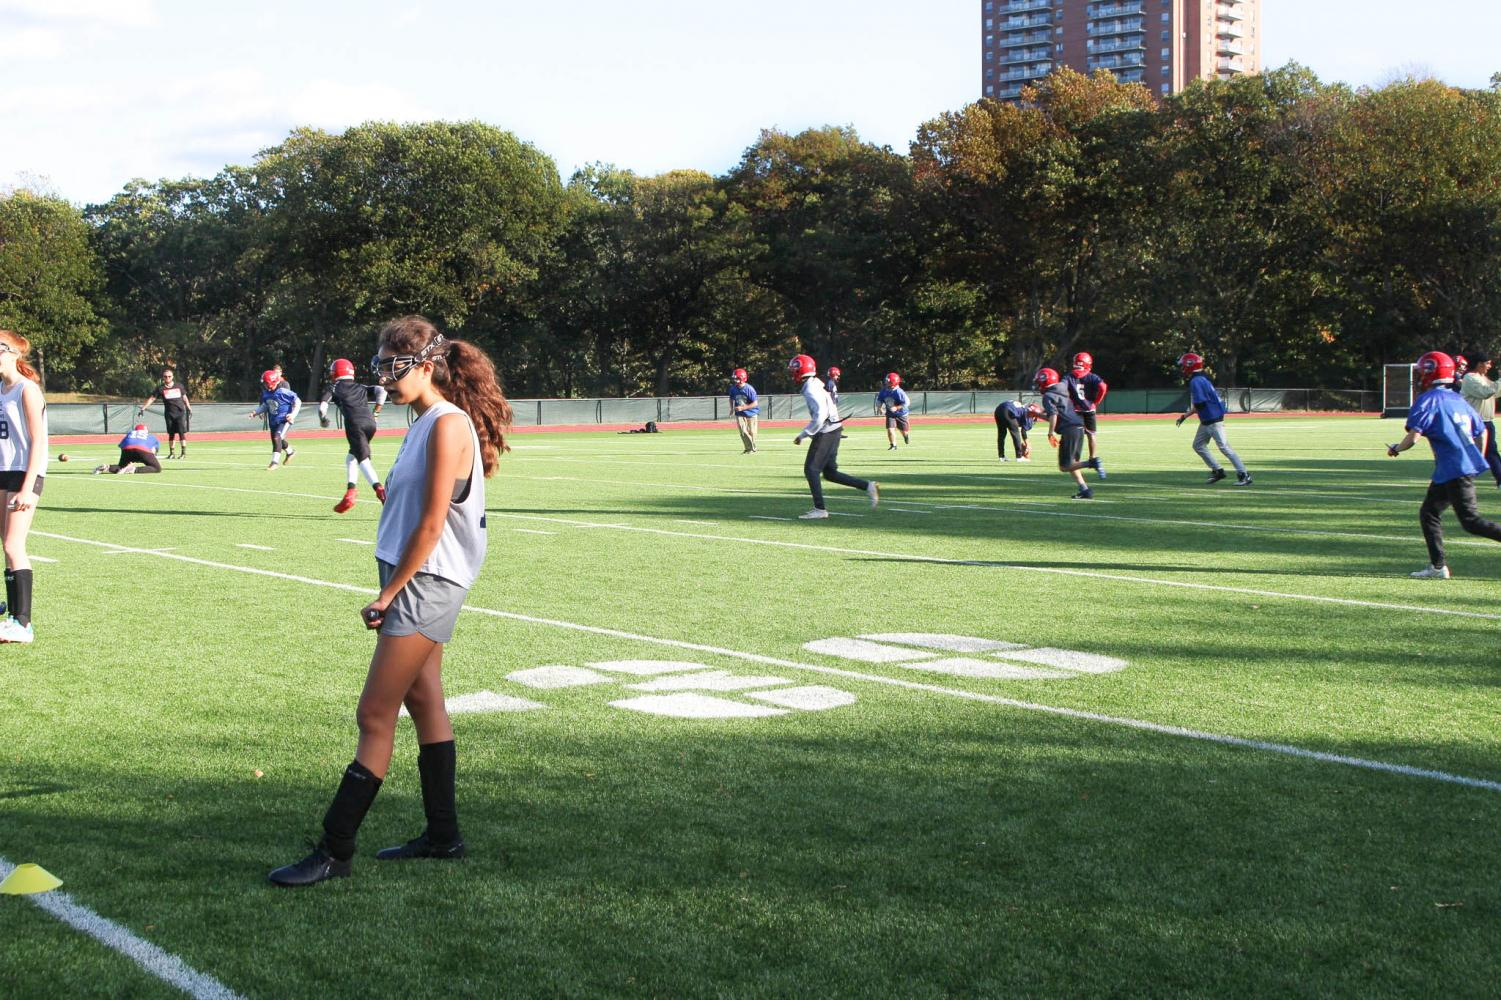 The girls field hockey game against Newton North on Tuesday Oct. 15 was moved to Fisher Hill. The boys football